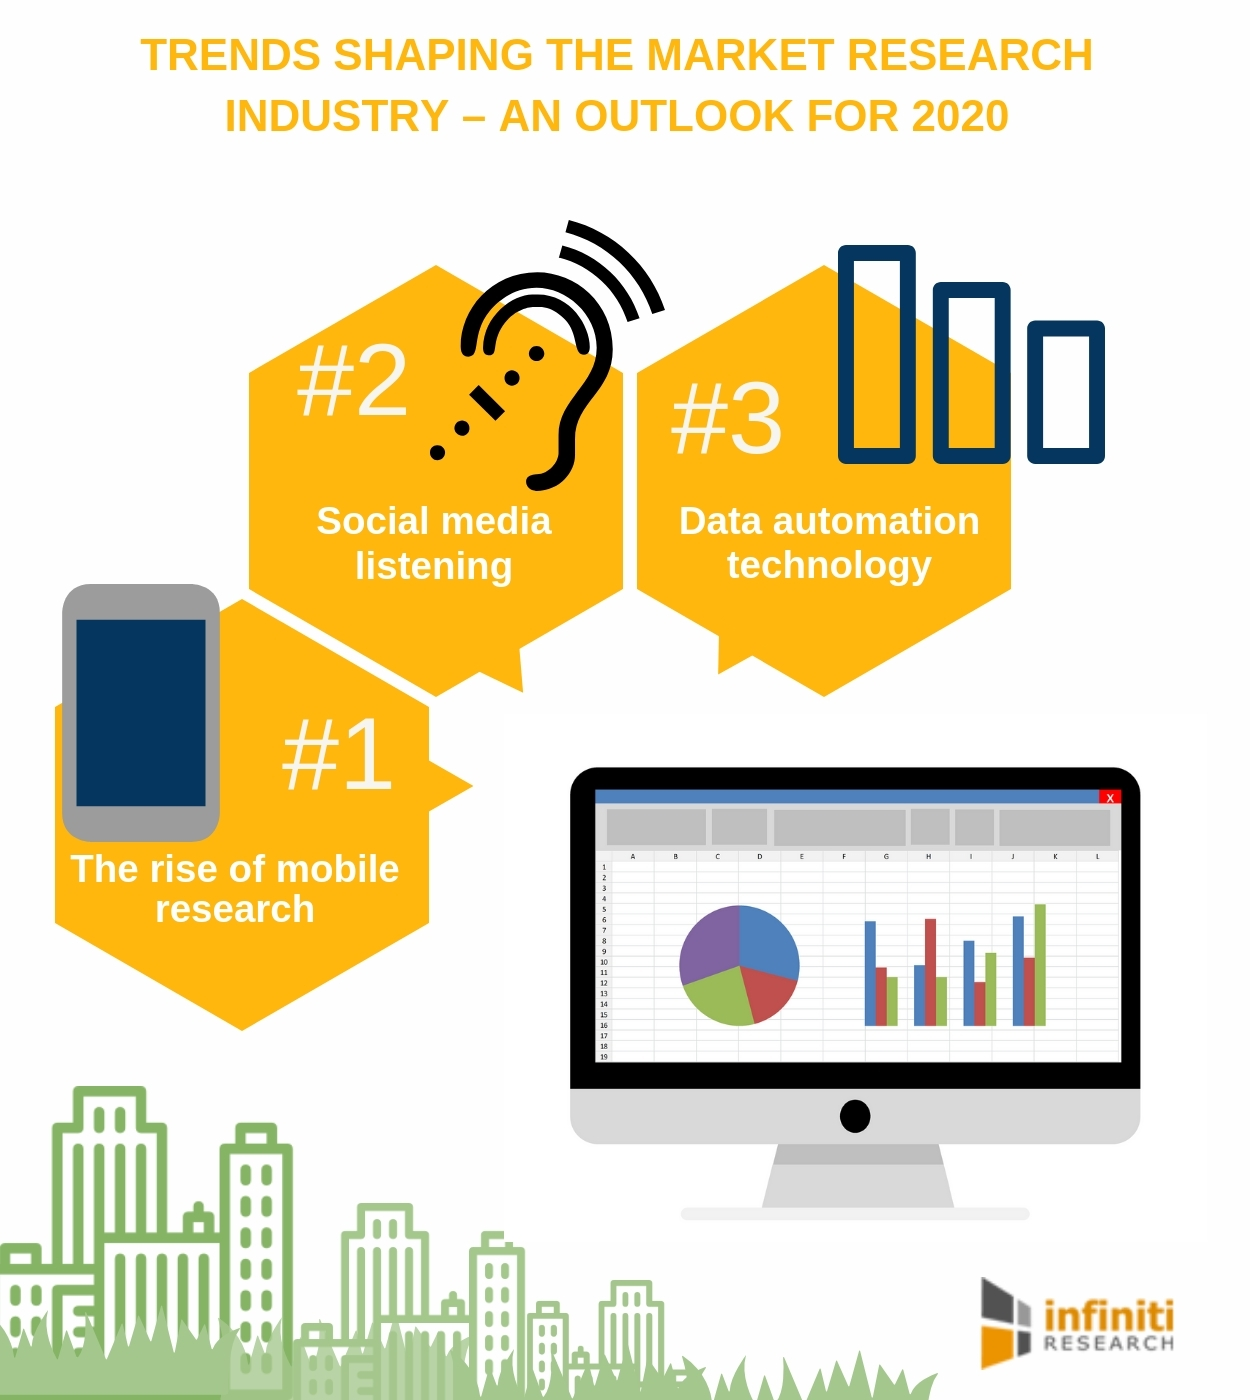 Infiniti Research Explores the Most Surprising Trends in the Market